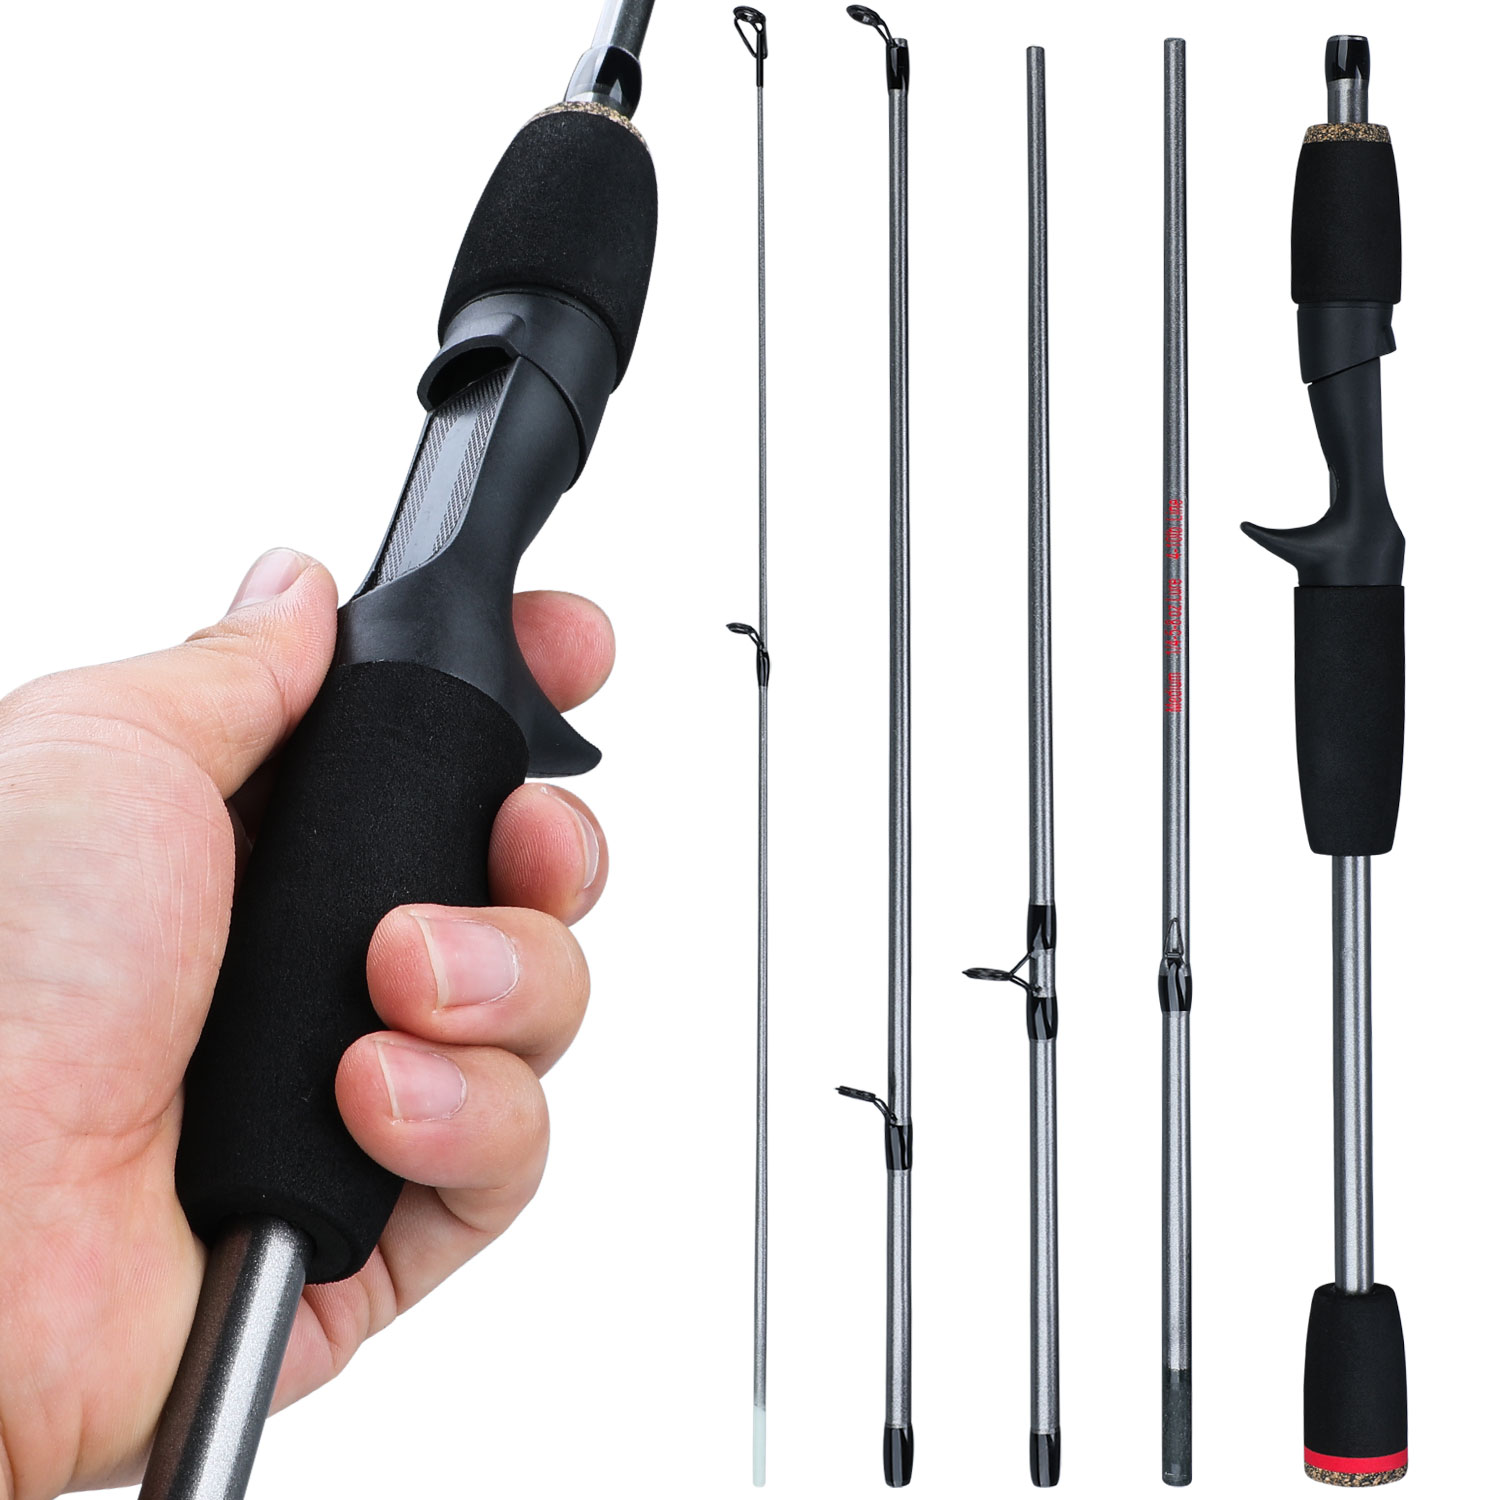 Sougayilang New 5 Section Portable Travel Fishing Rod Ultralight Weight Eva Handle Spinning/Casting Fishing Pole Fishing Tackle|Fishing Rods| |  - title=